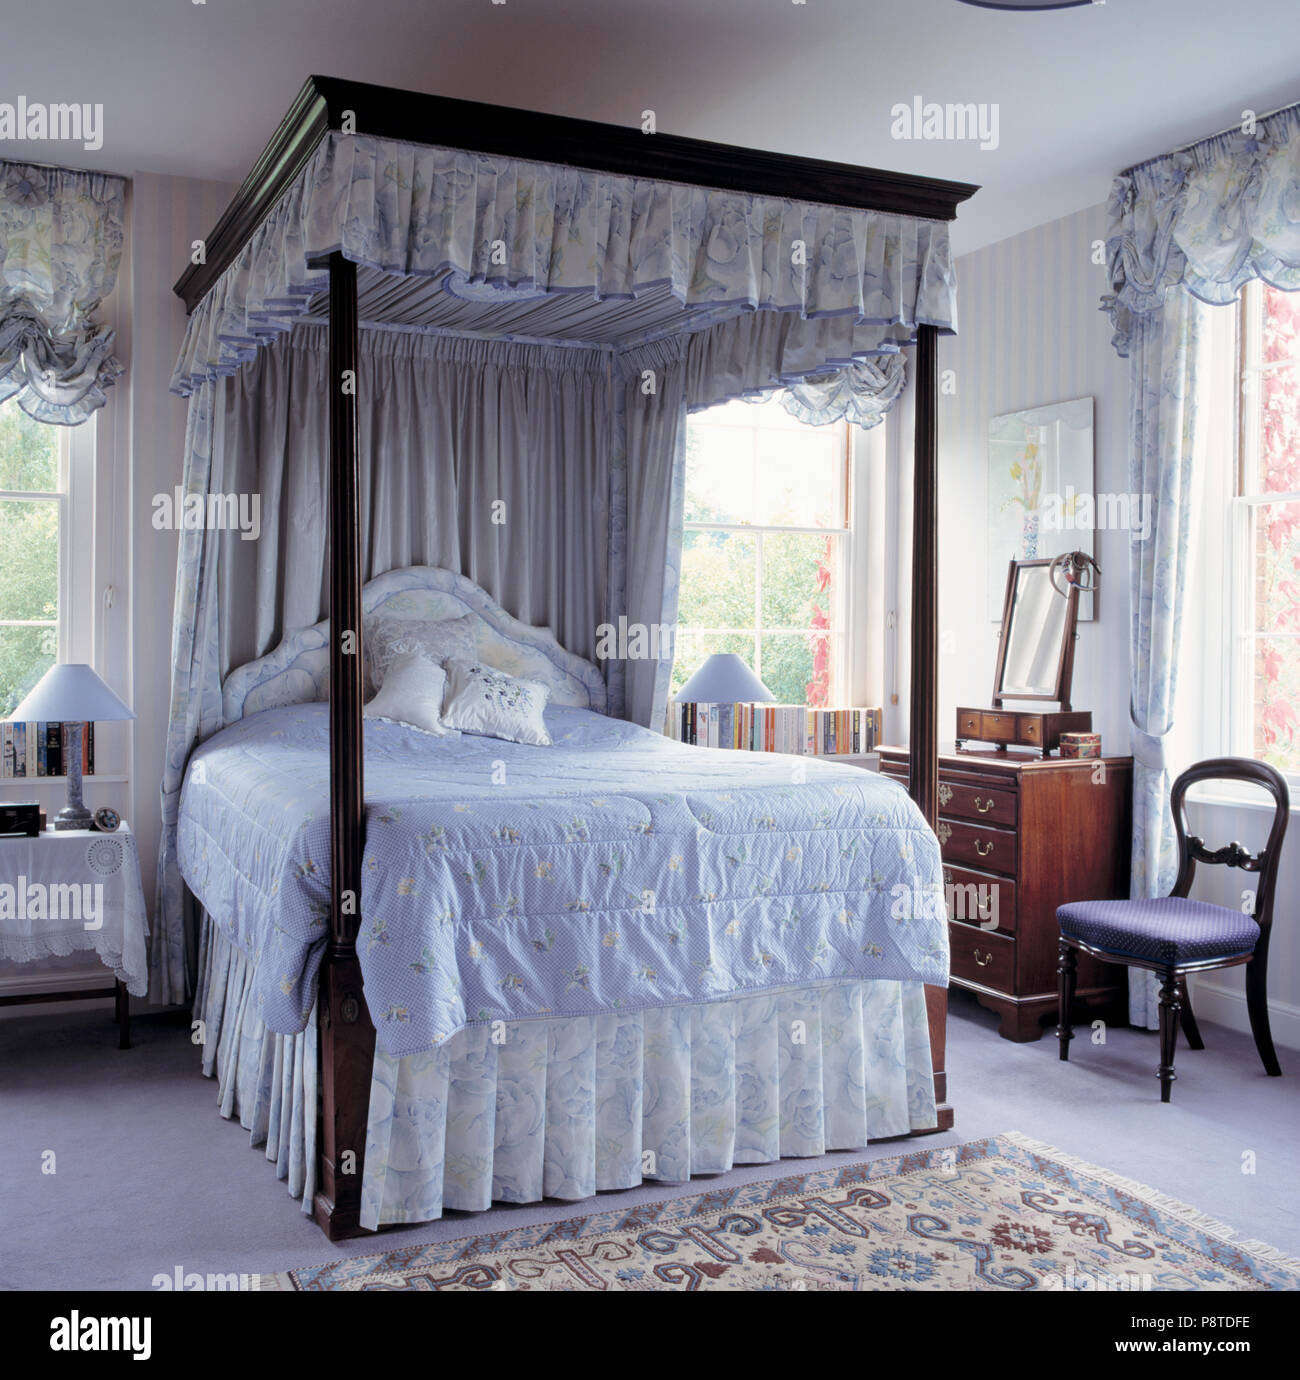 Blue White Drapes On Fourposter Bed With Blue Quilt In Traditional Country Bedroom Stock Photo Alamy